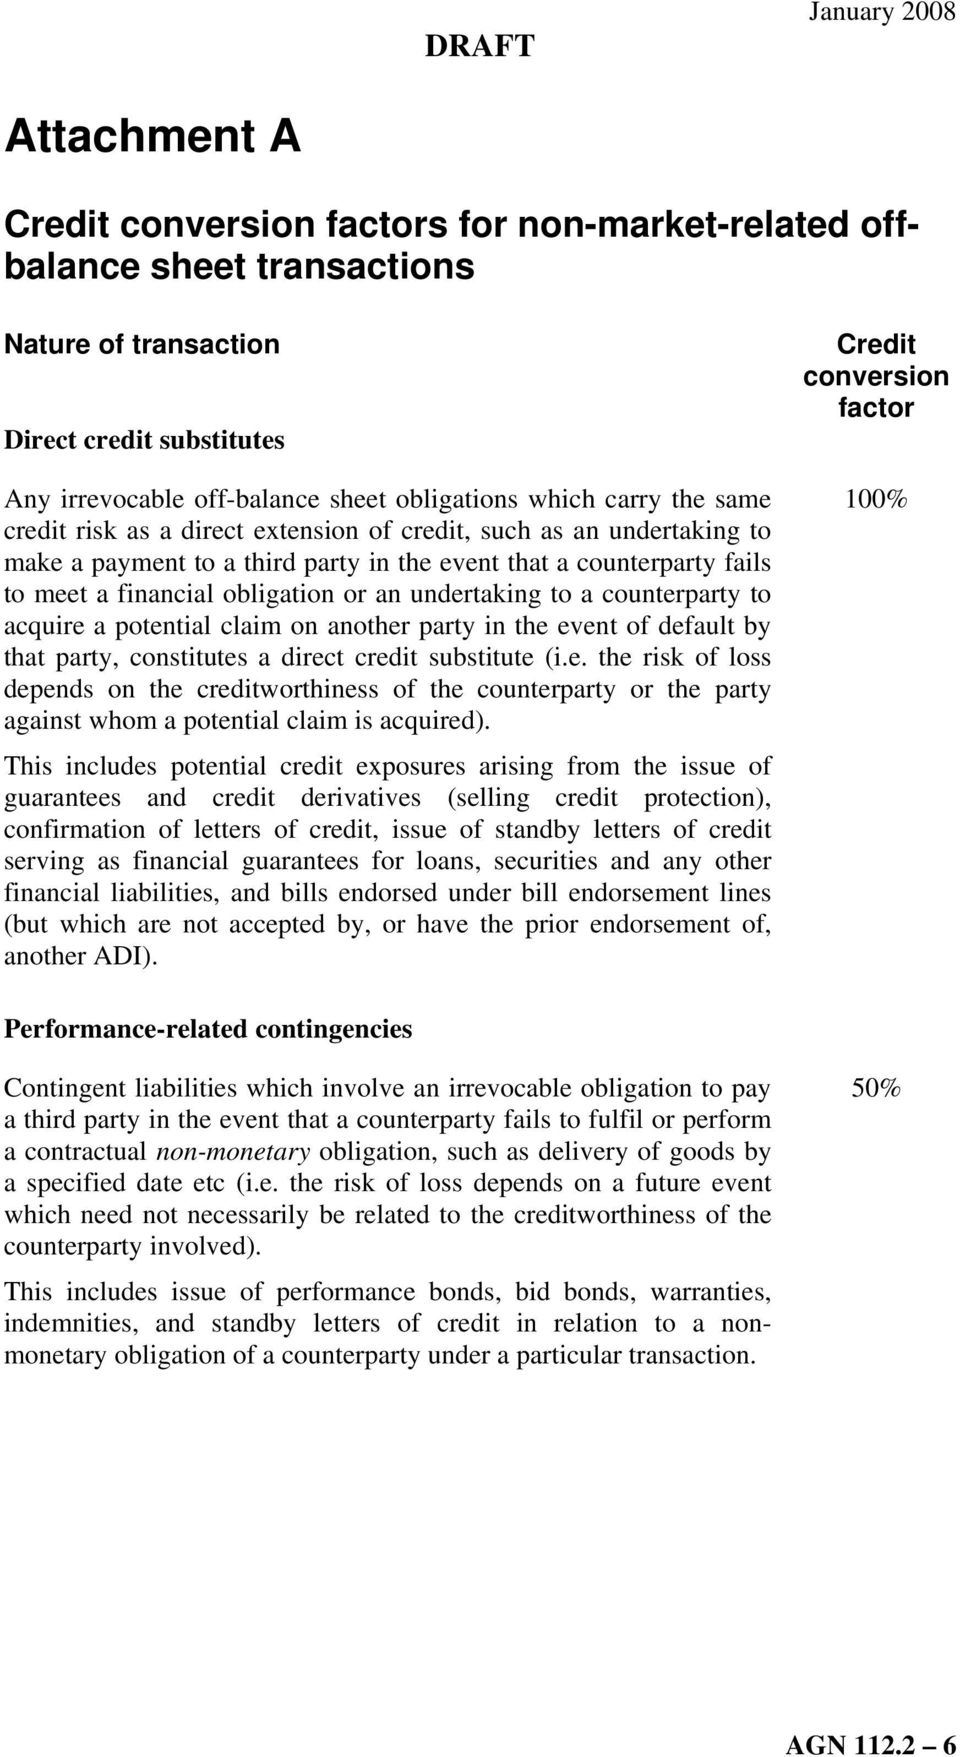 to a counterparty to acquire a potential claim on another party in the event of default by that party, constitutes a direct credit substitute (i.e. the risk of loss depends on the creditworthiness of the counterparty or the party against whom a potential claim is acquired).